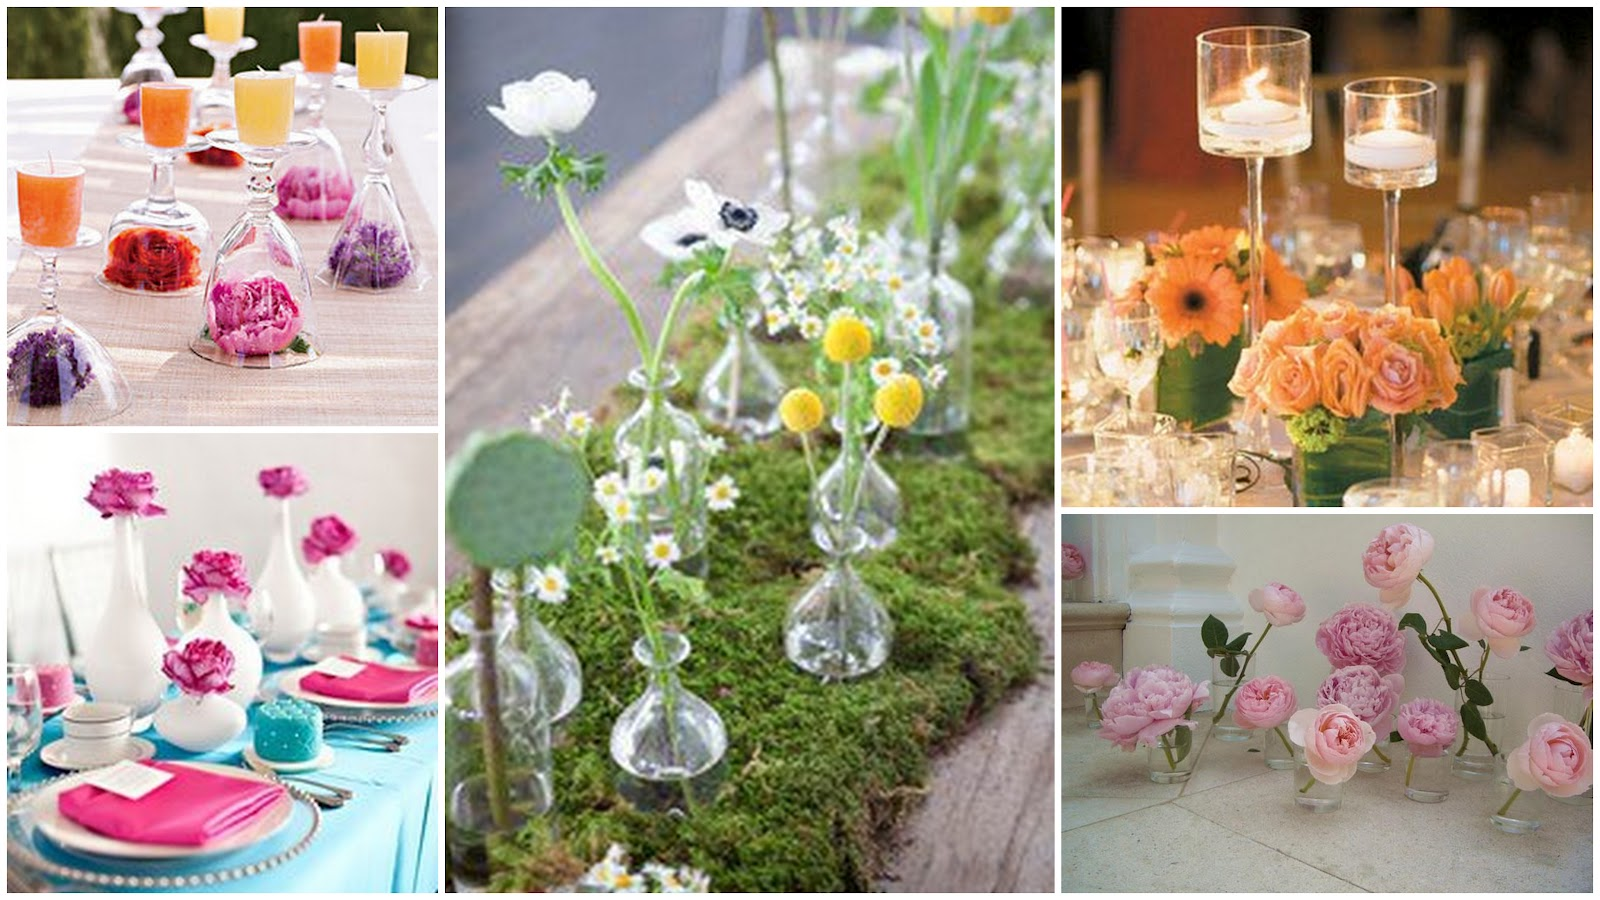 Crowning Celebrations: Crowning Inspiration: Simple Chic Centerpieces